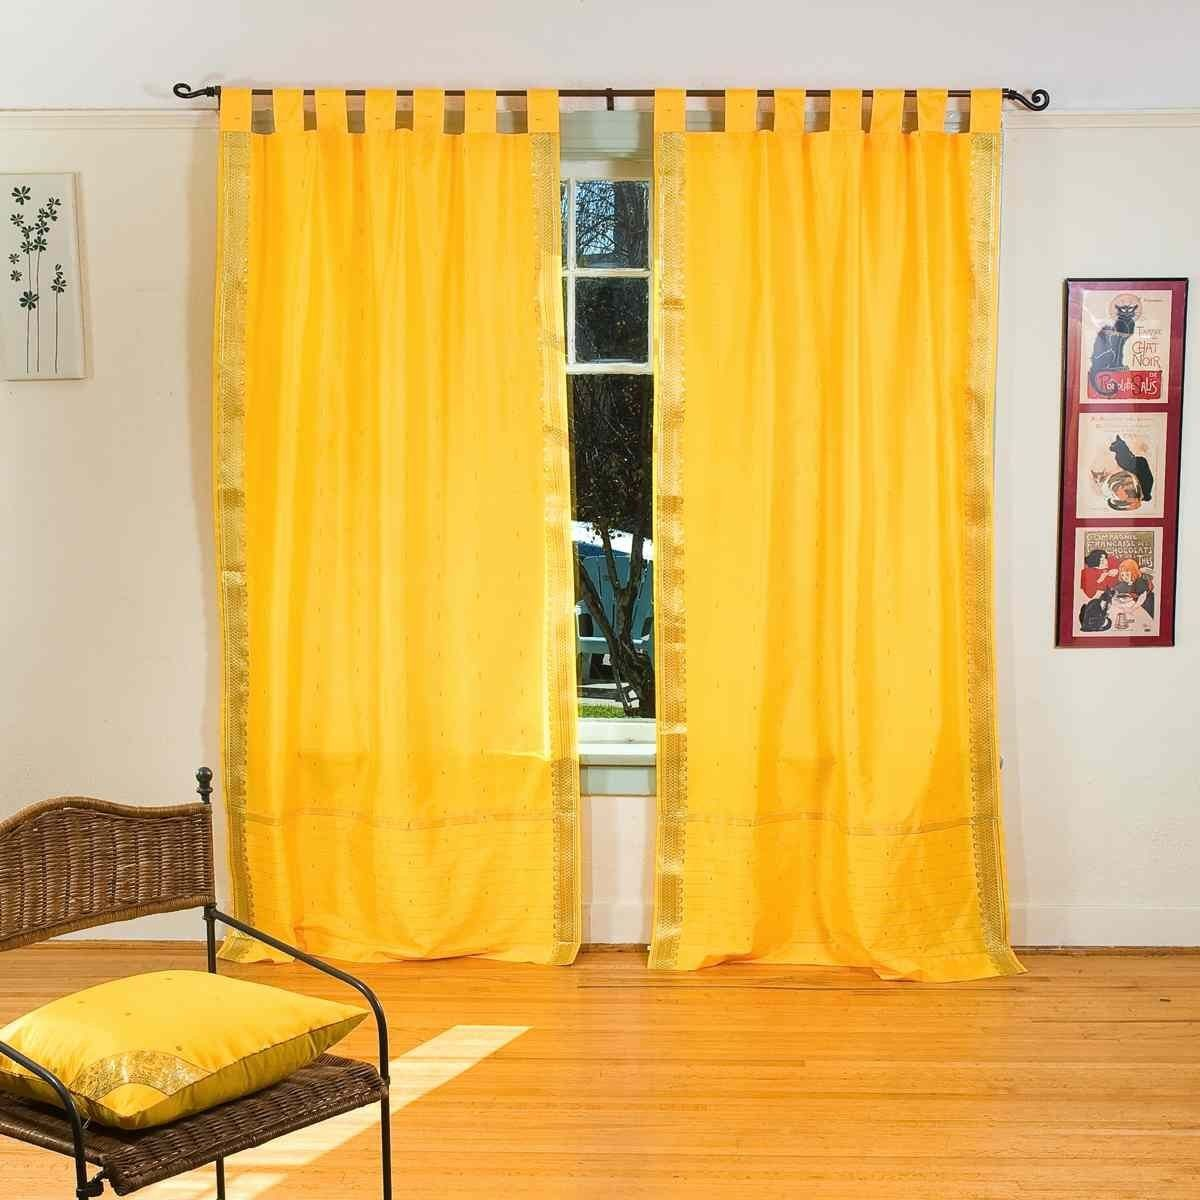 Sheer yellow curtains - Sheer Yellow Curtains Indian Sari Curtains 1000 Images About Curtains On Pinterest Feeling Fine Products